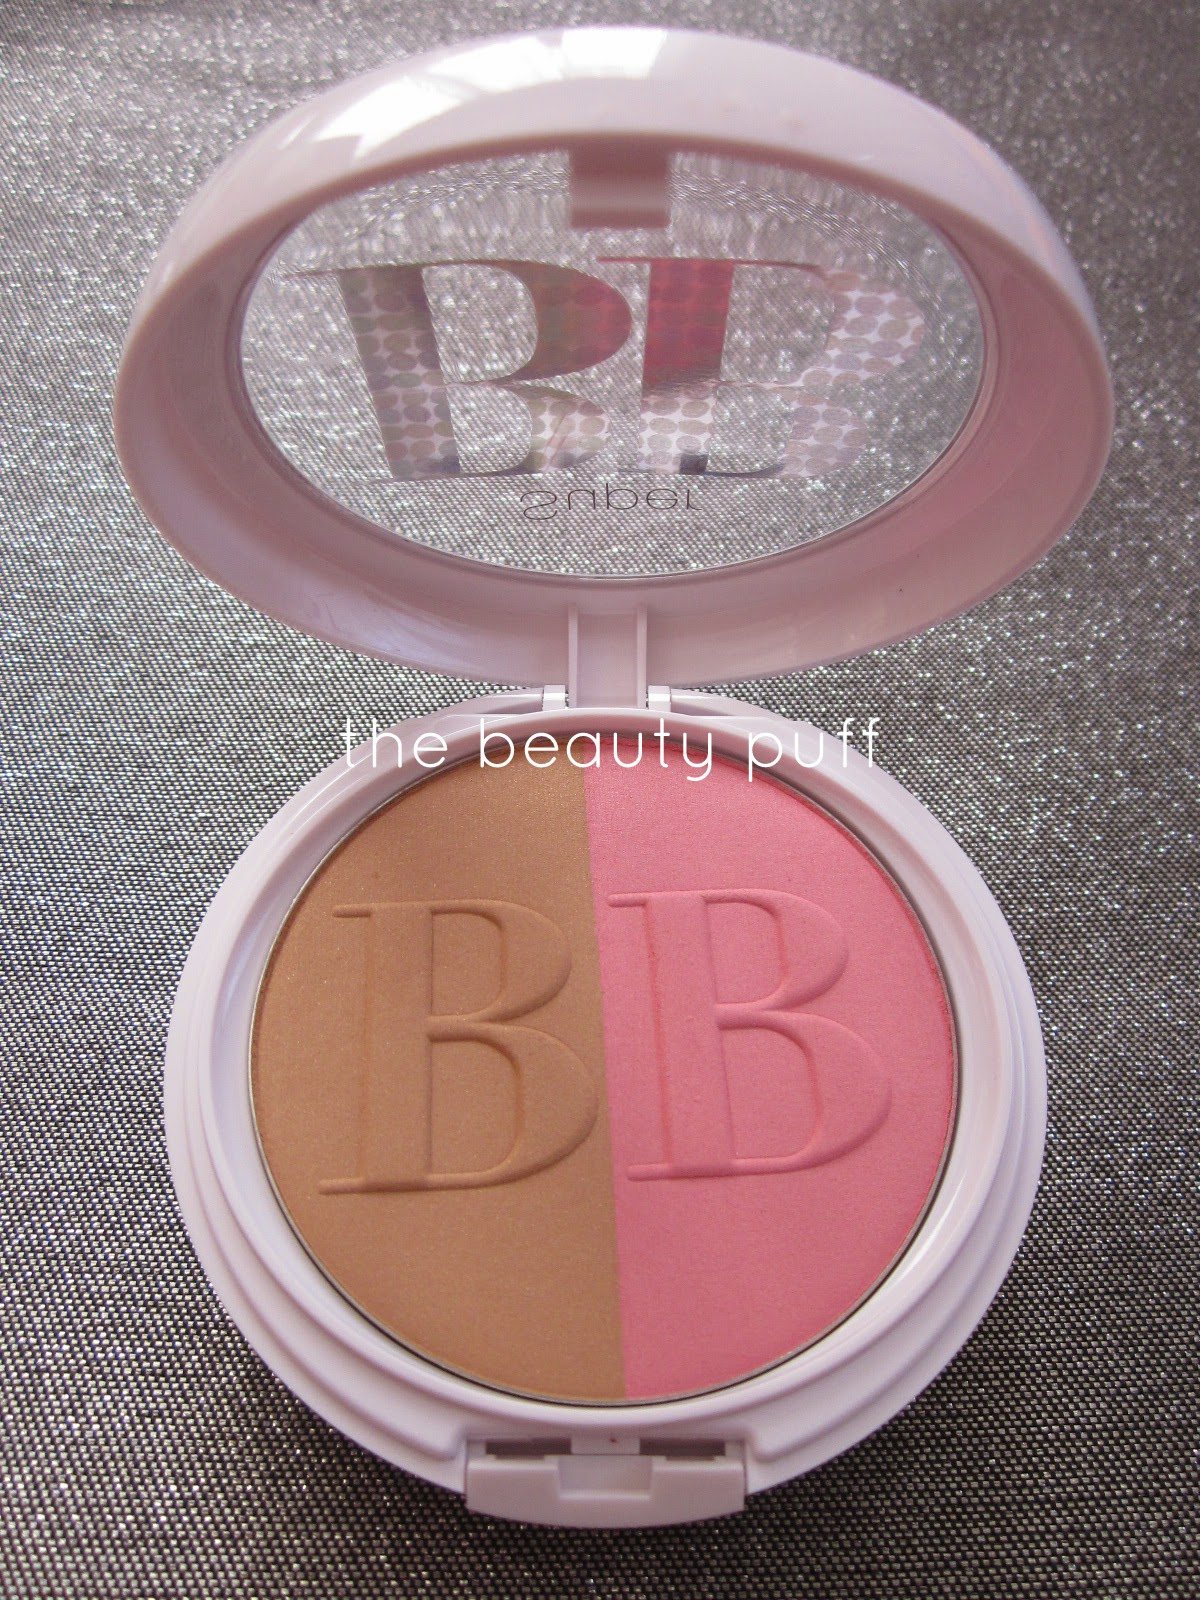 physicians formula super bb bronzer & blush - the beauty puff